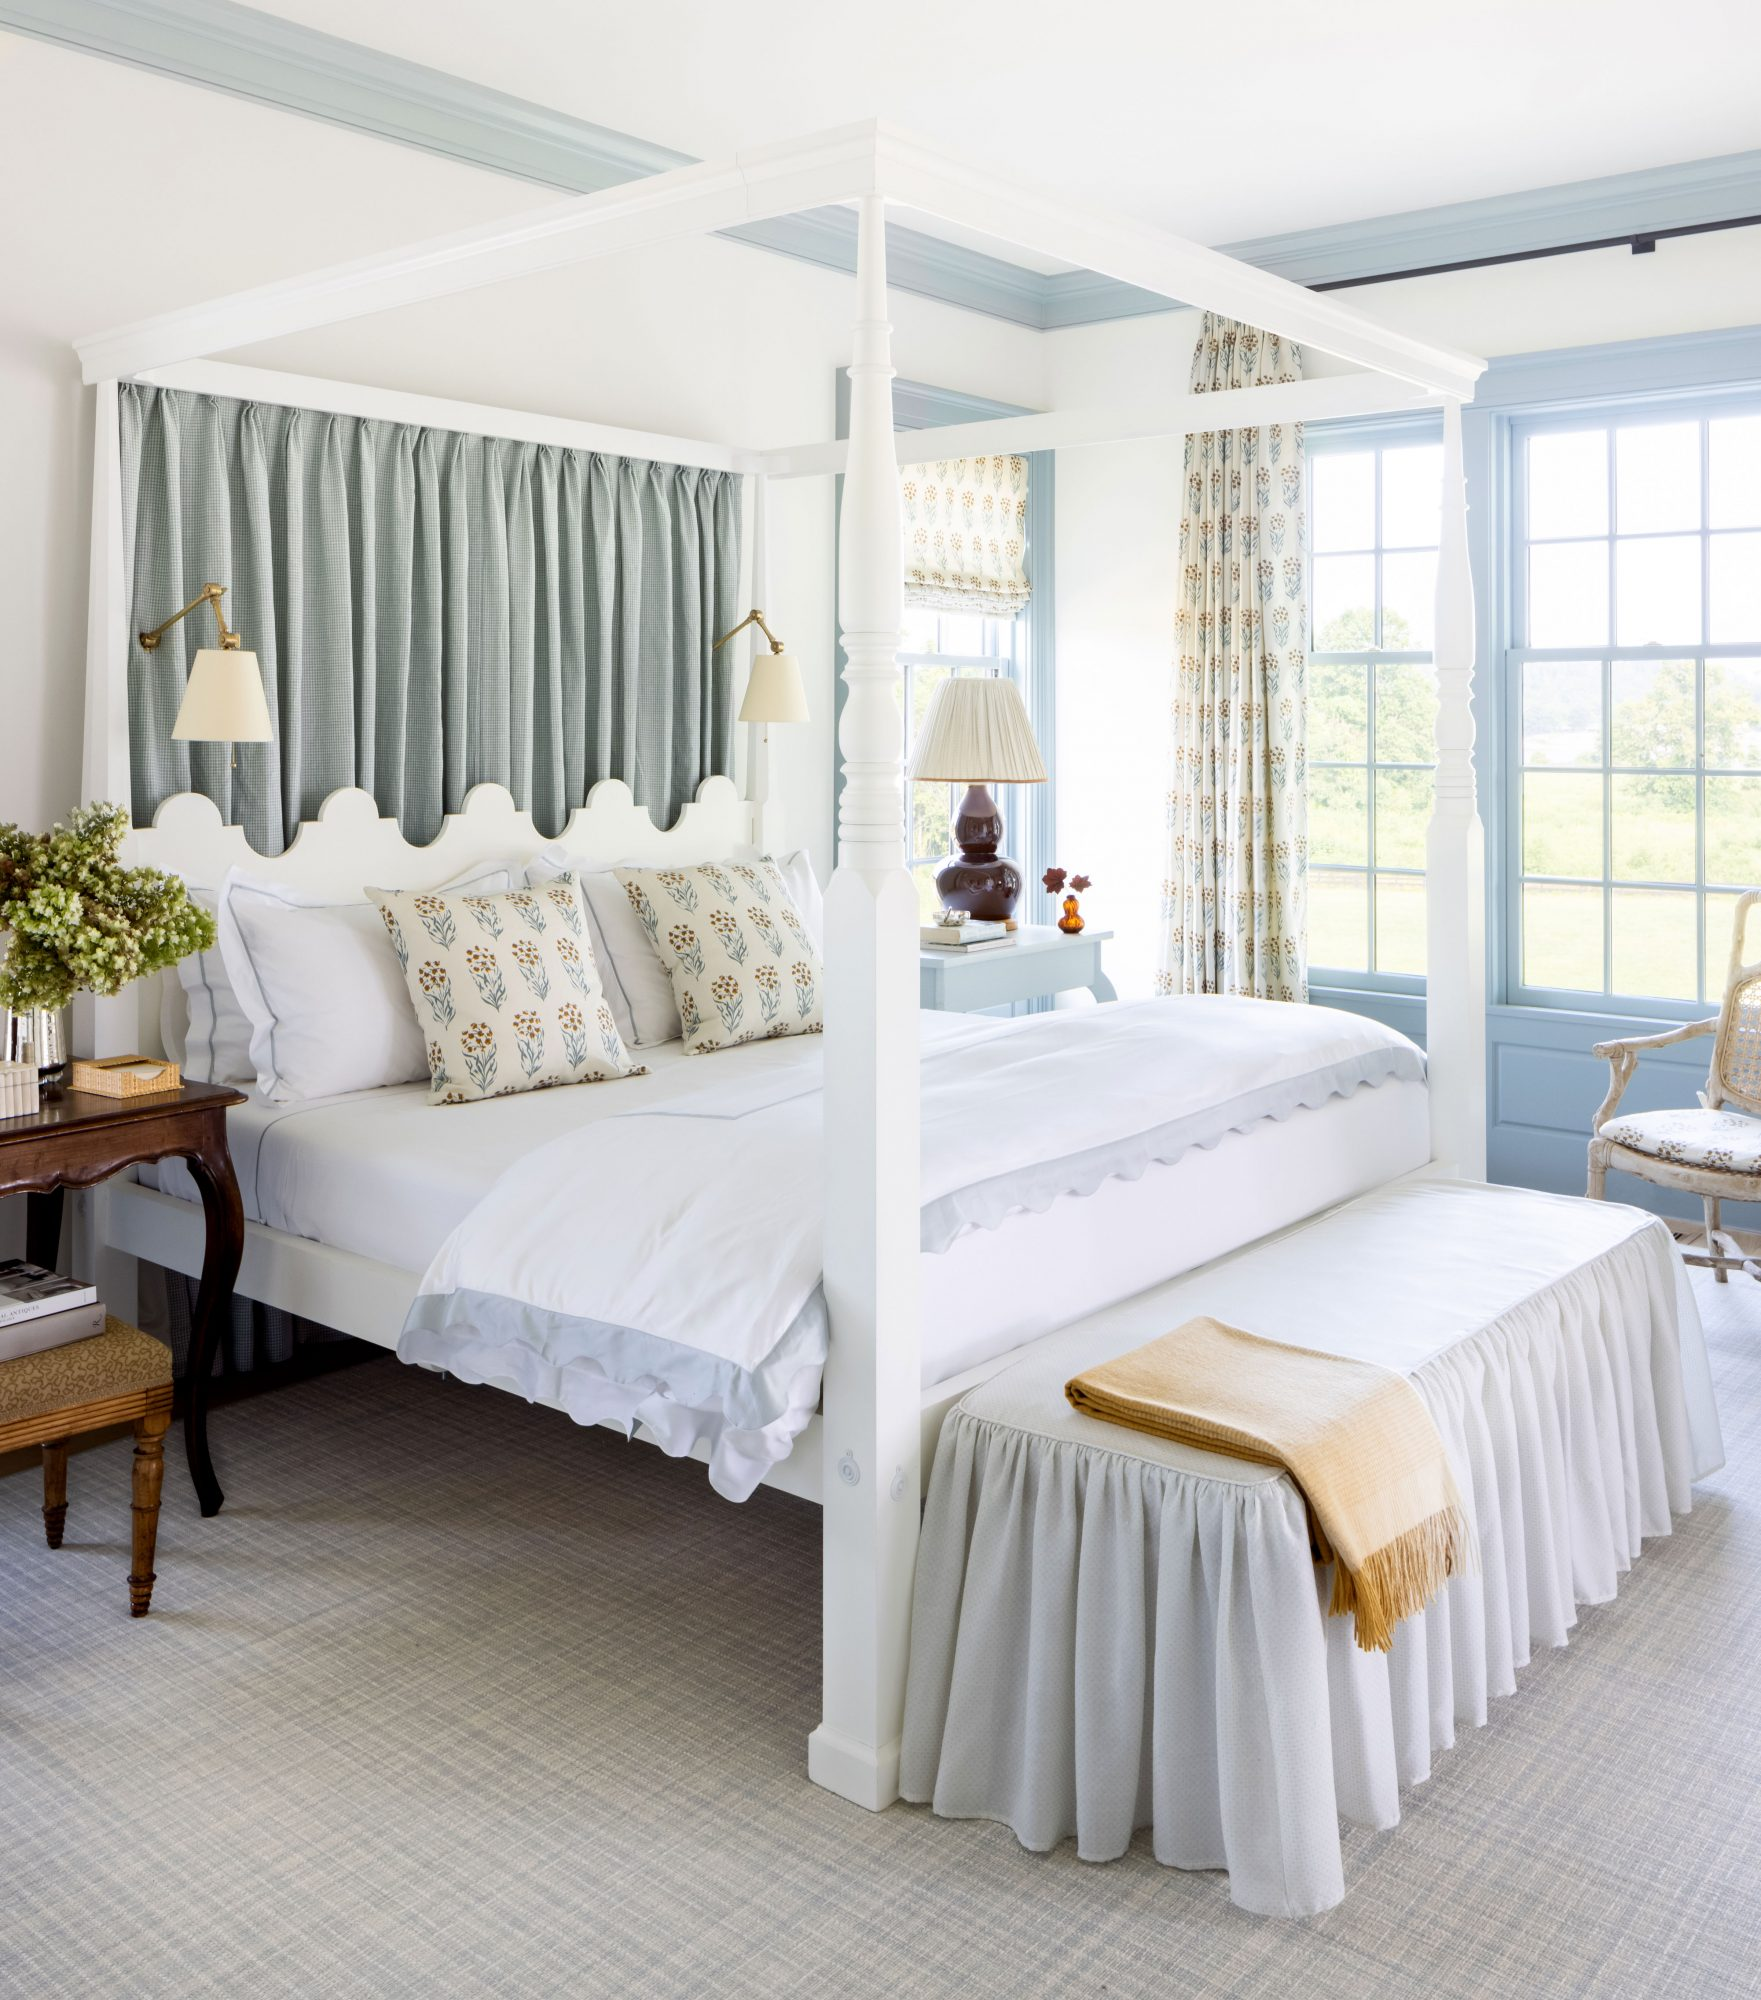 2021 Idea House Main Bedroom in Blue and White